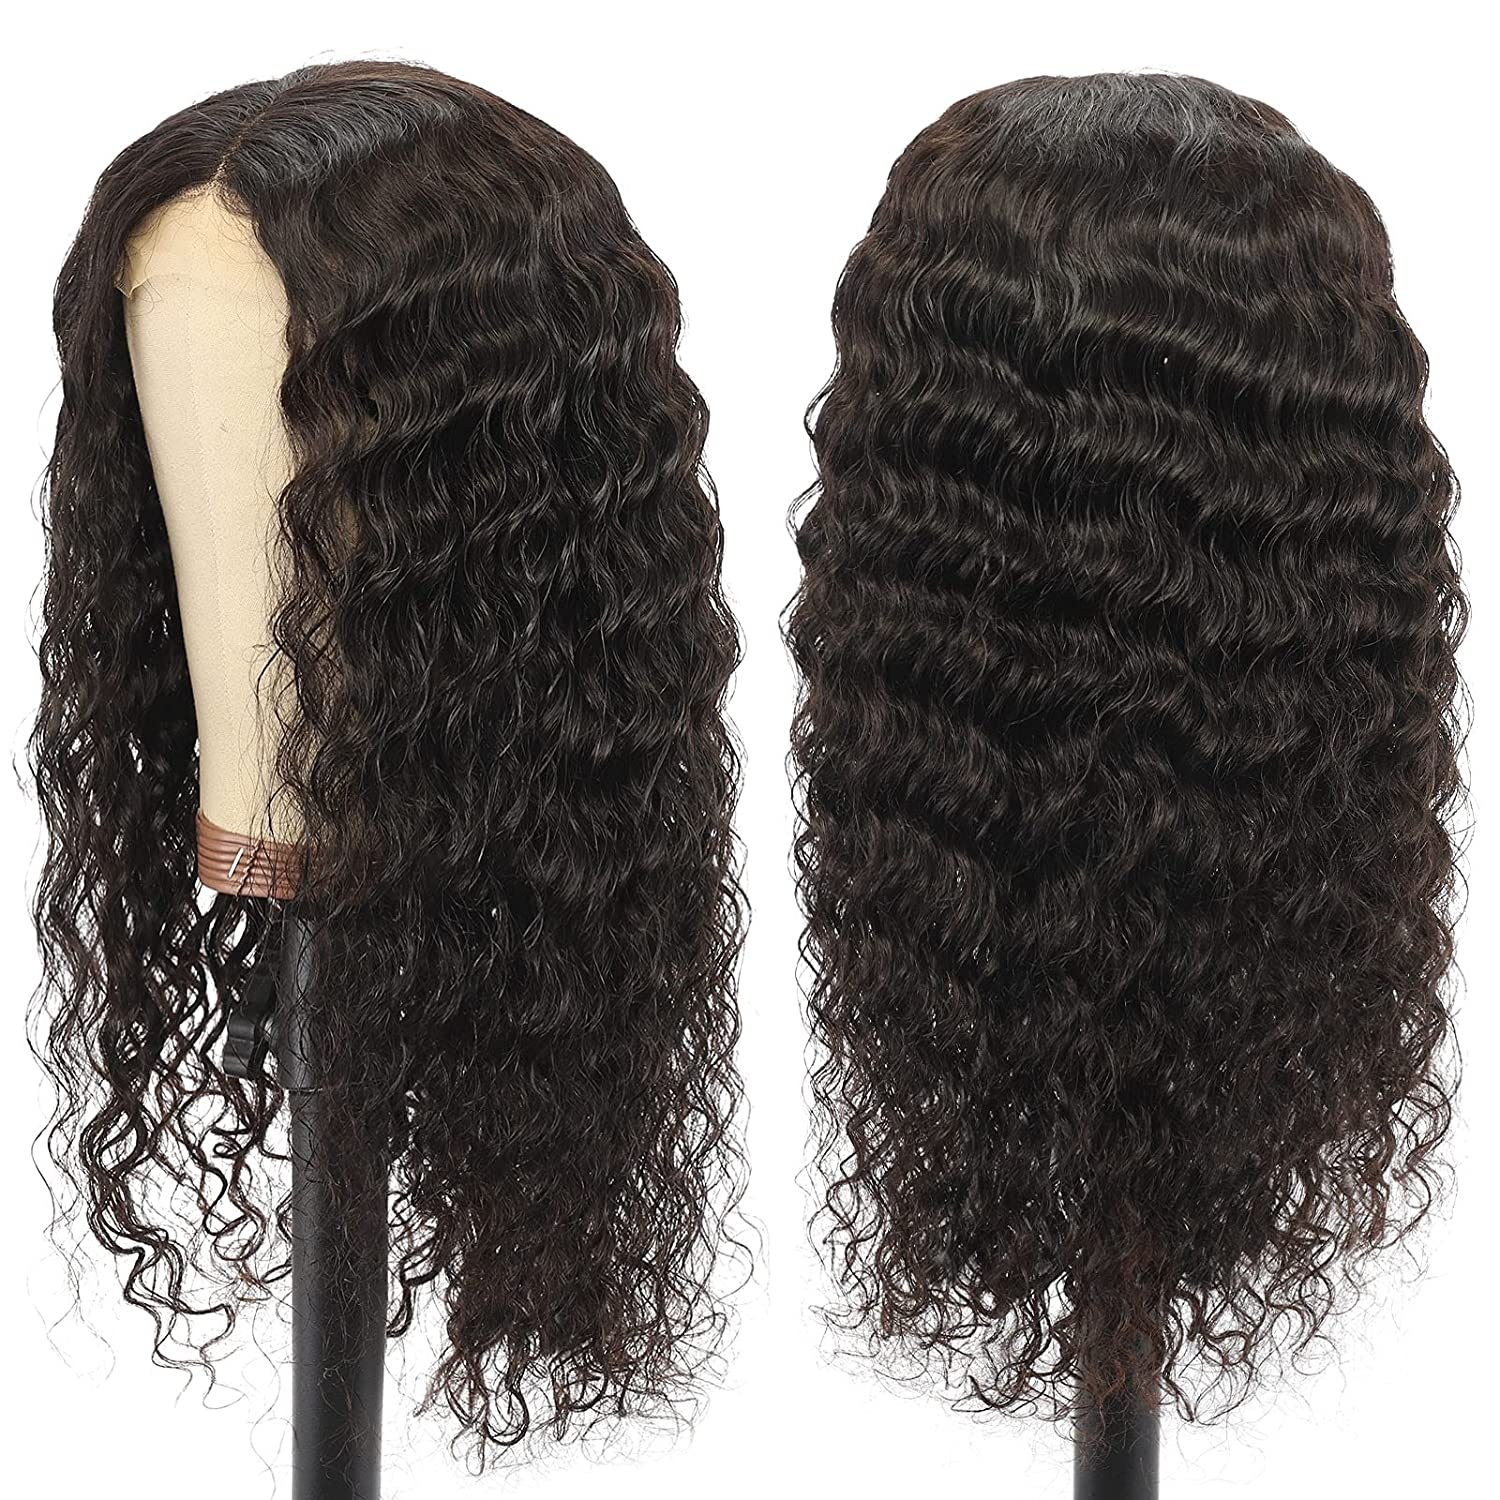 NAMOYA Lace Front Wigs Human Hair 5 lowest price ☆ very popular W 22 Wave Deep Inch